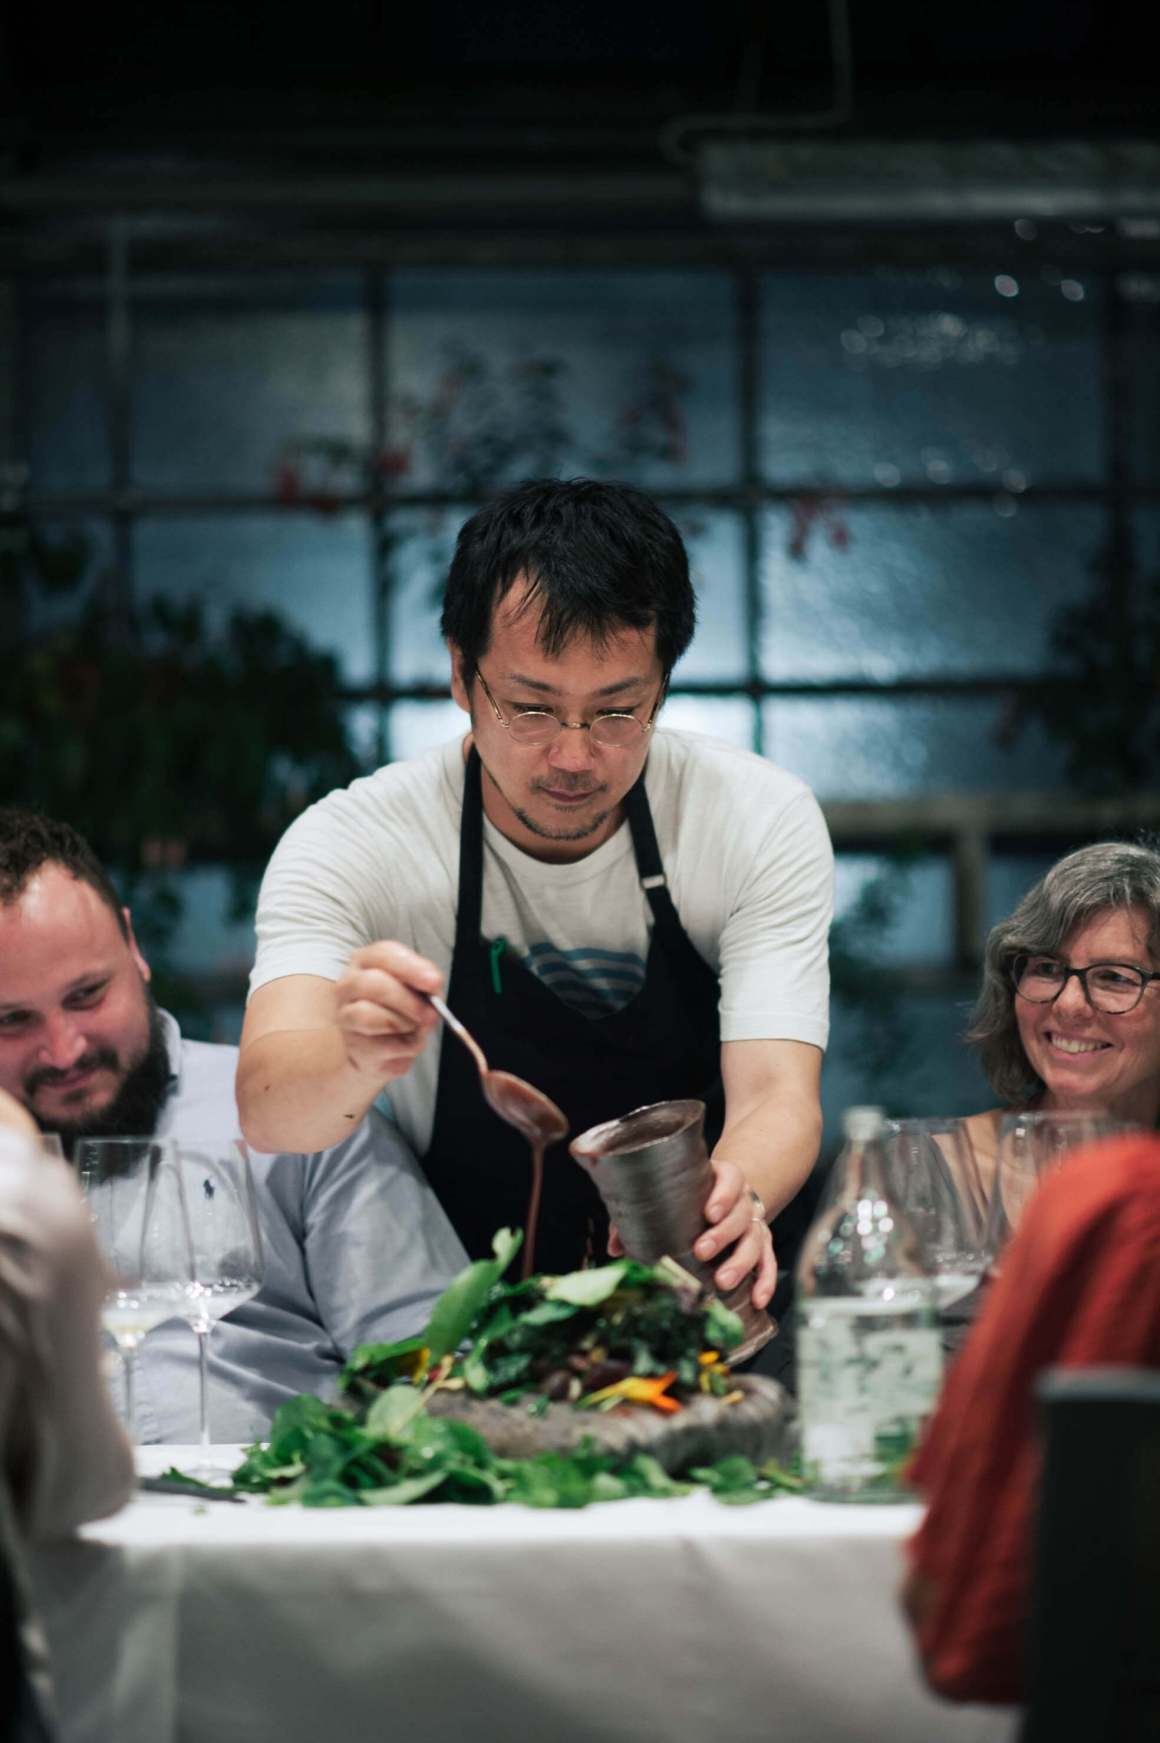 Berries and Spice | Steinbesser Experimental Gastronomy: when food, art and sustainability meet with elegance and playfulness